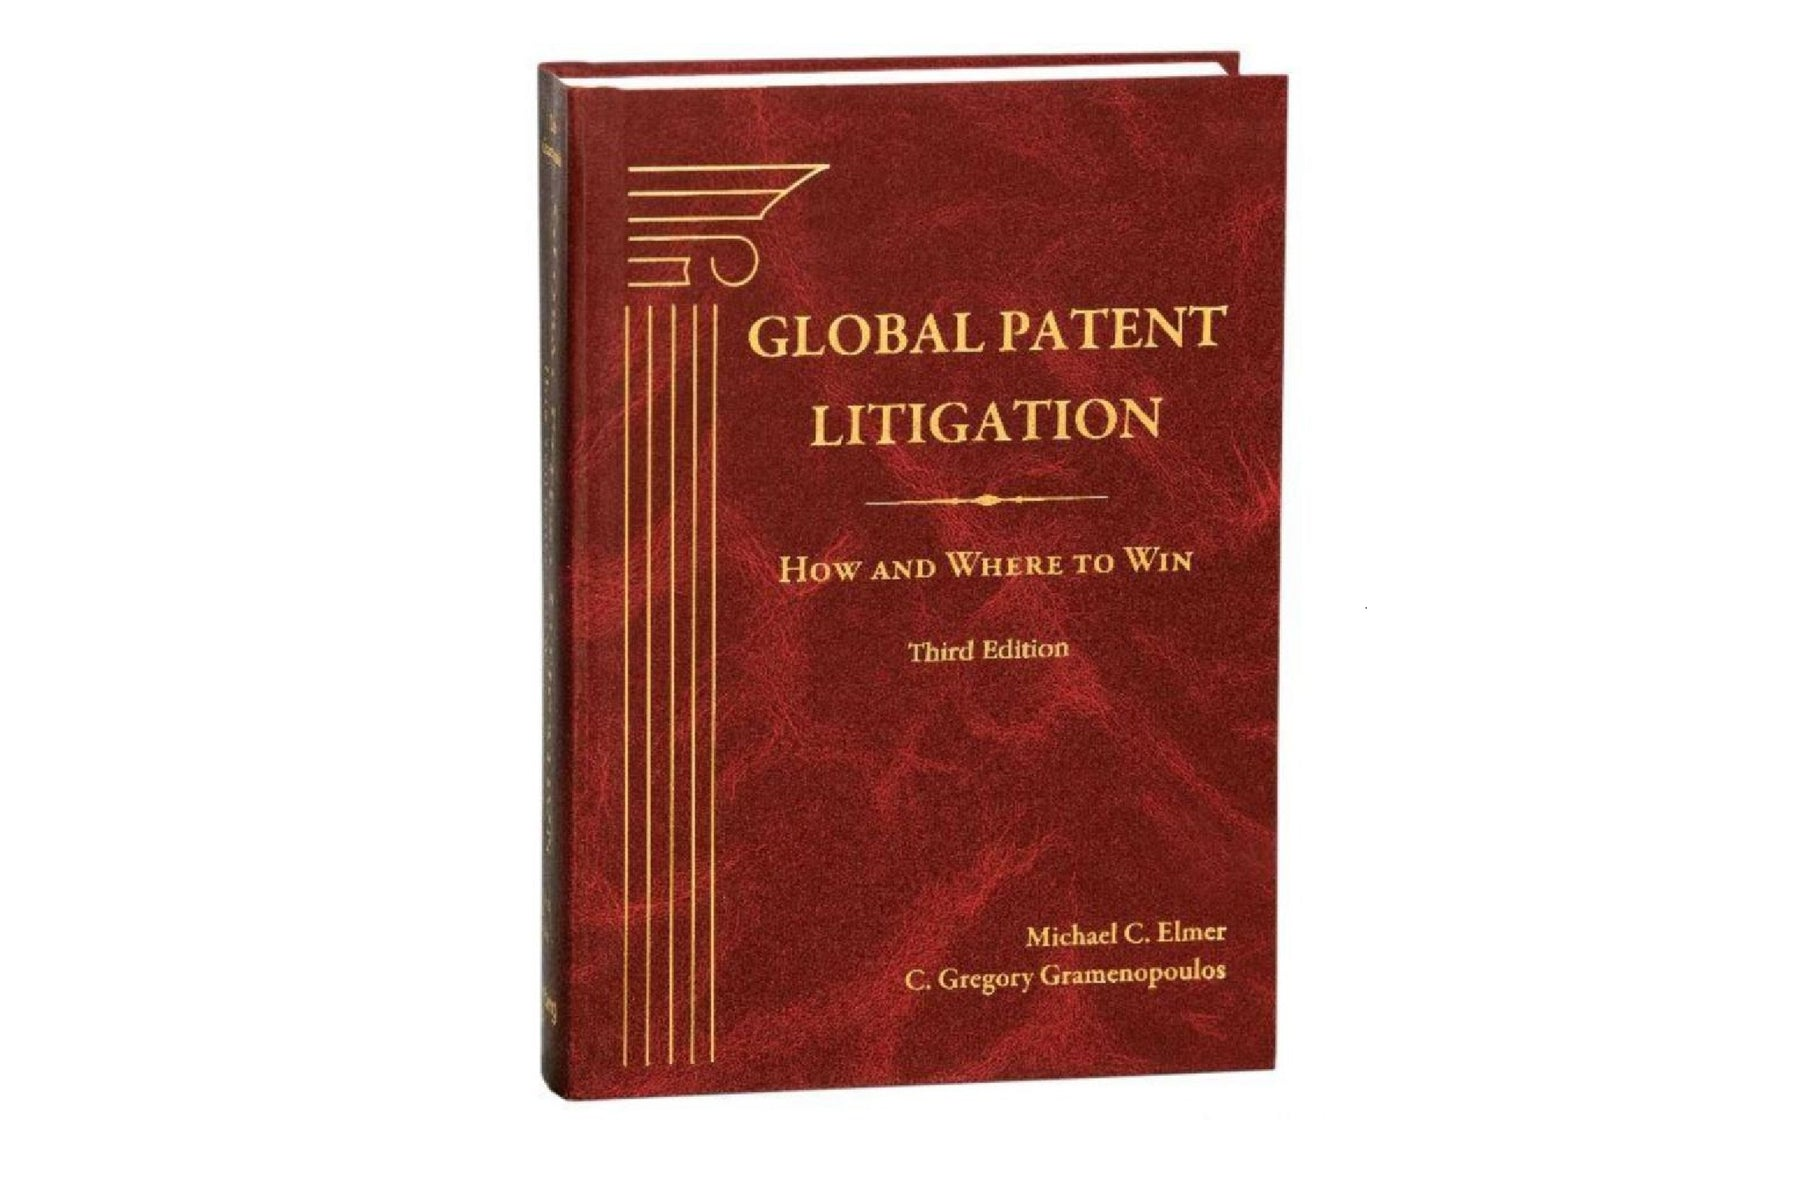 Global Patent Litigation: How and Where to Win, Third Edition